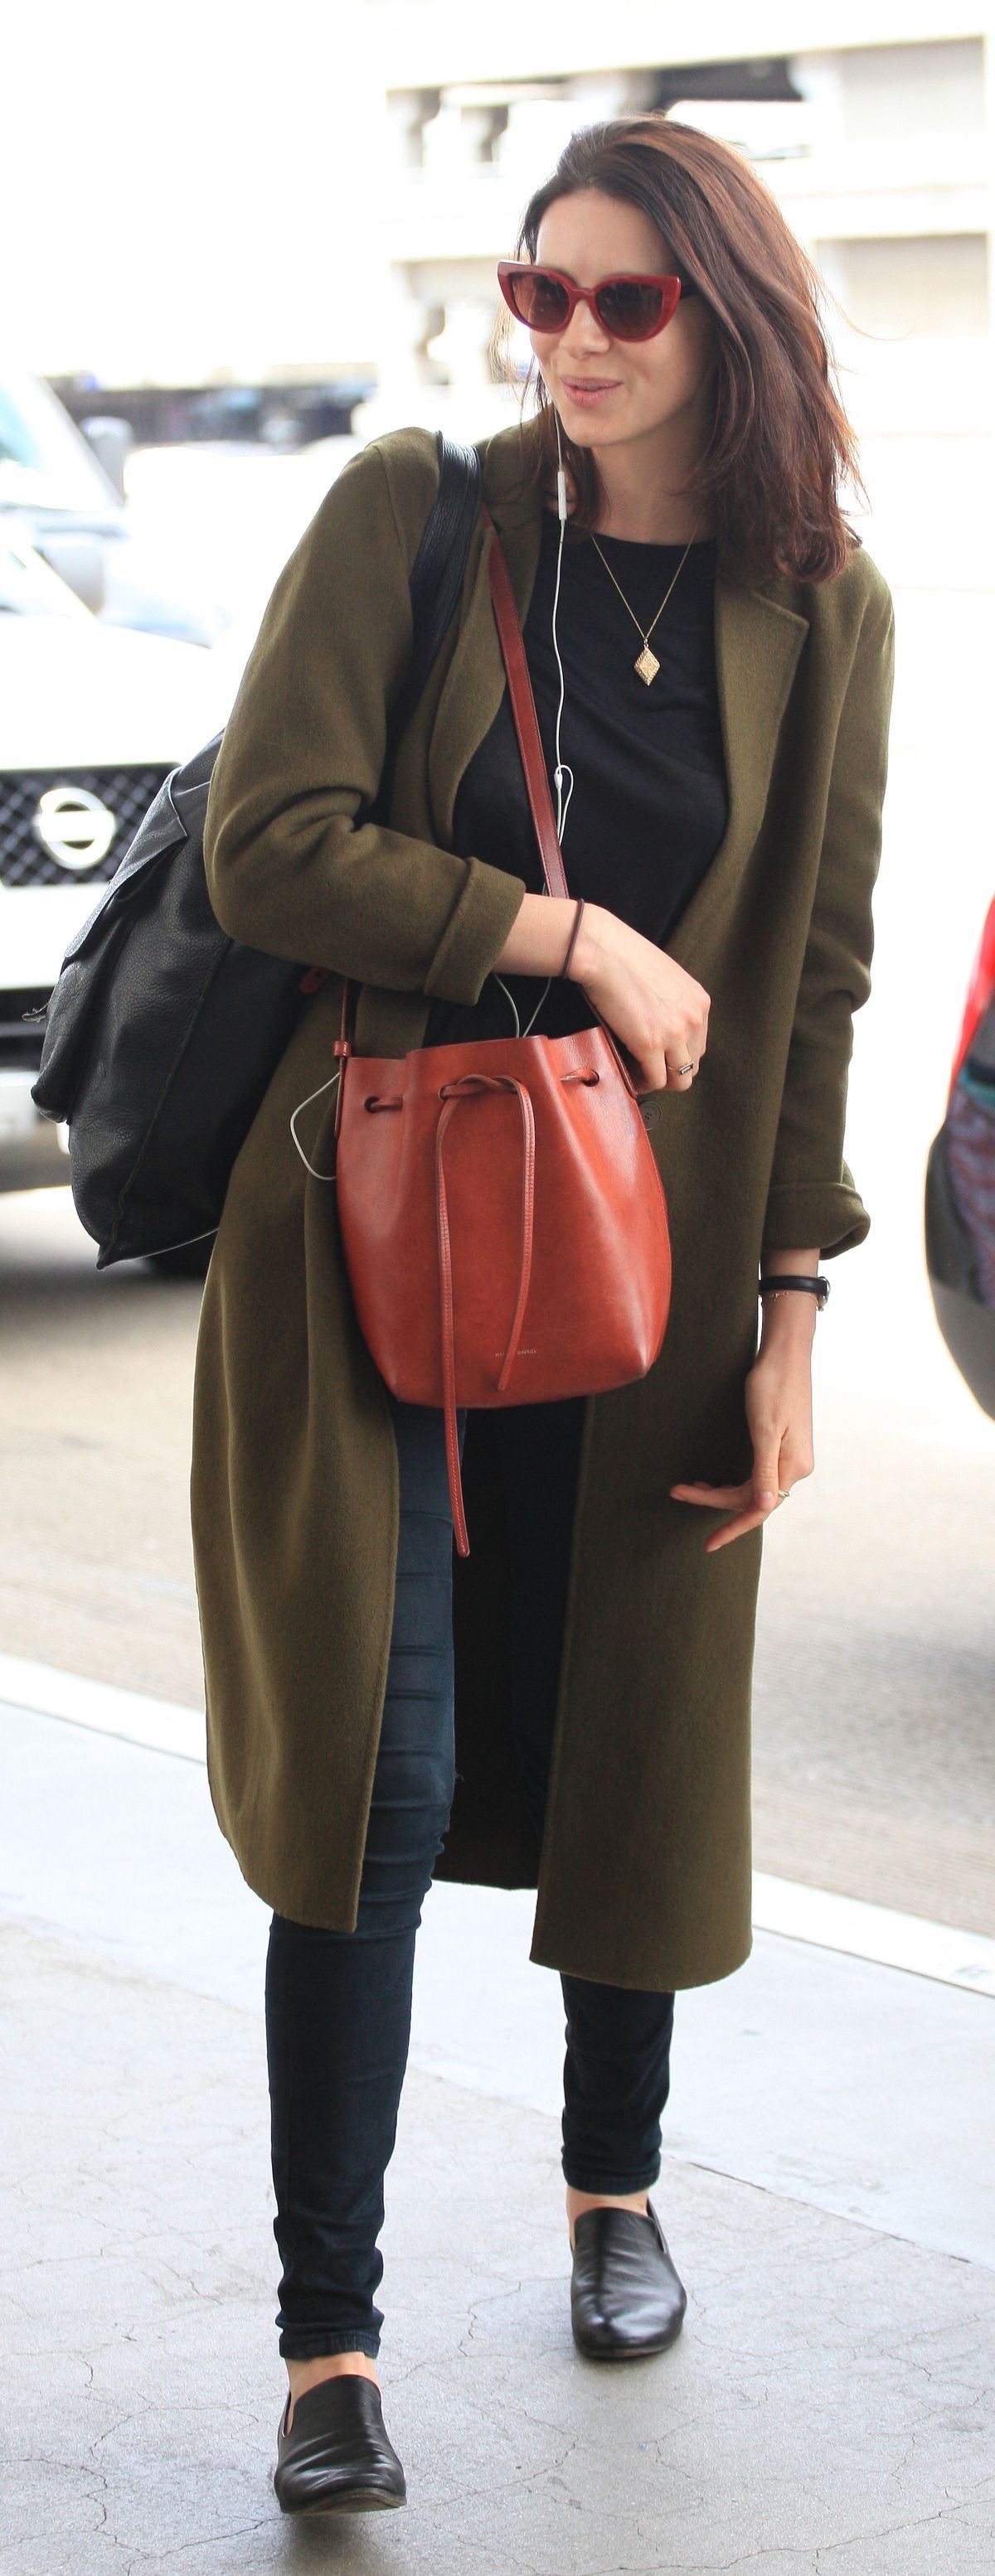 Outlander Actress Caitriona Balfe Arrives In A Olive Green Coat